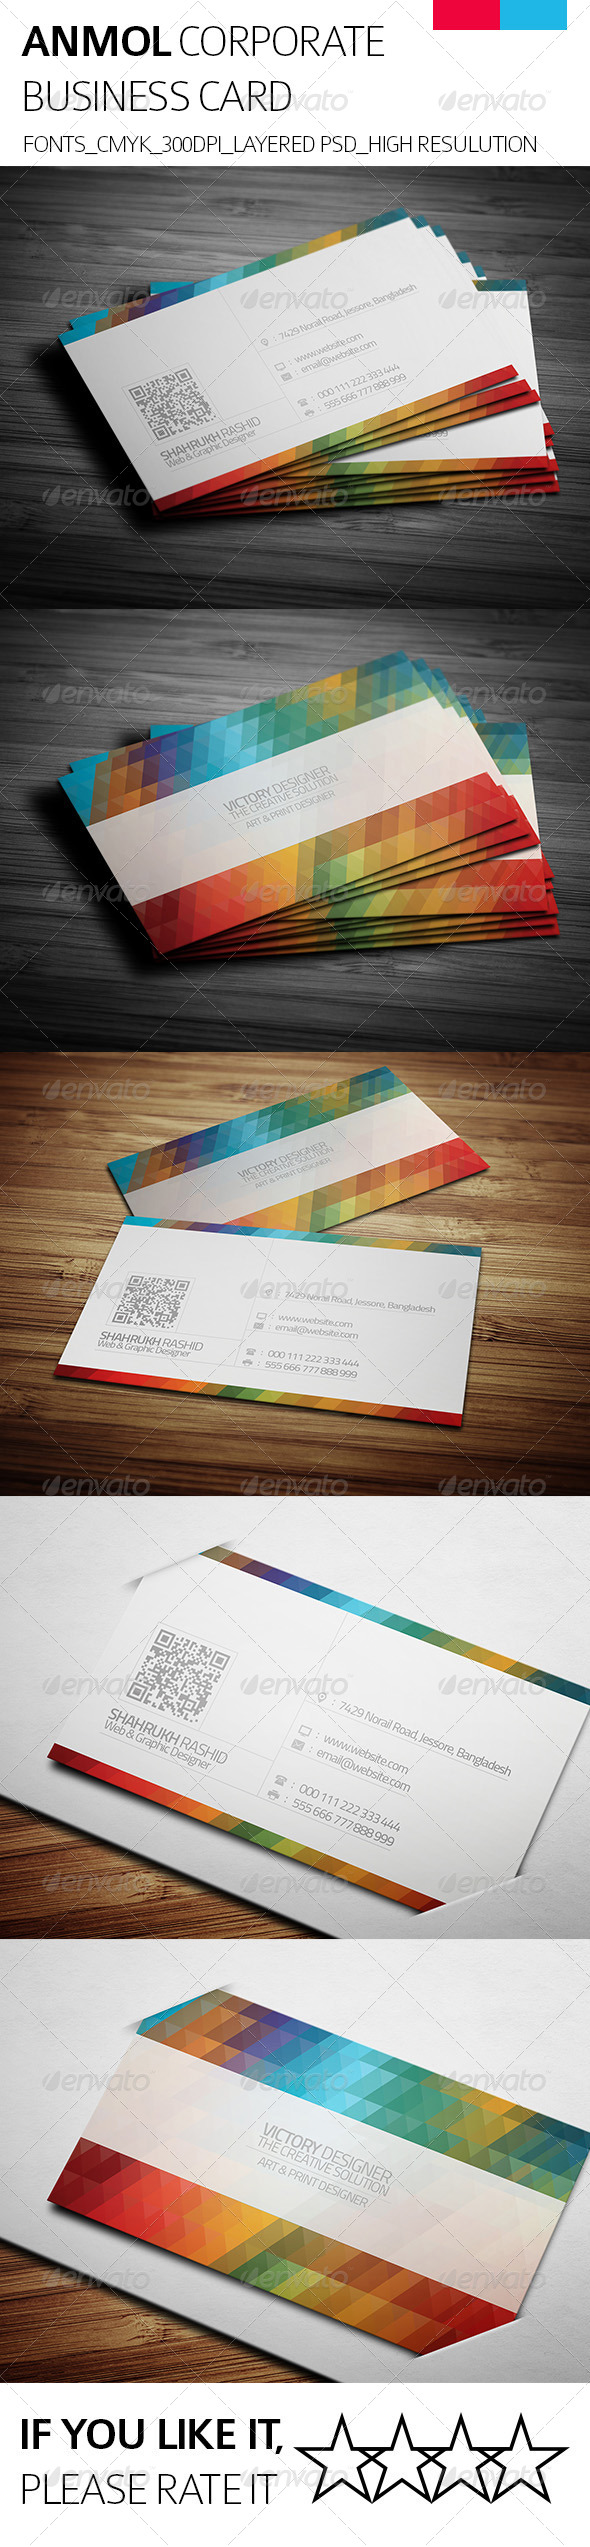 GraphicRiver Anmol & Corporate Business Card 8122197